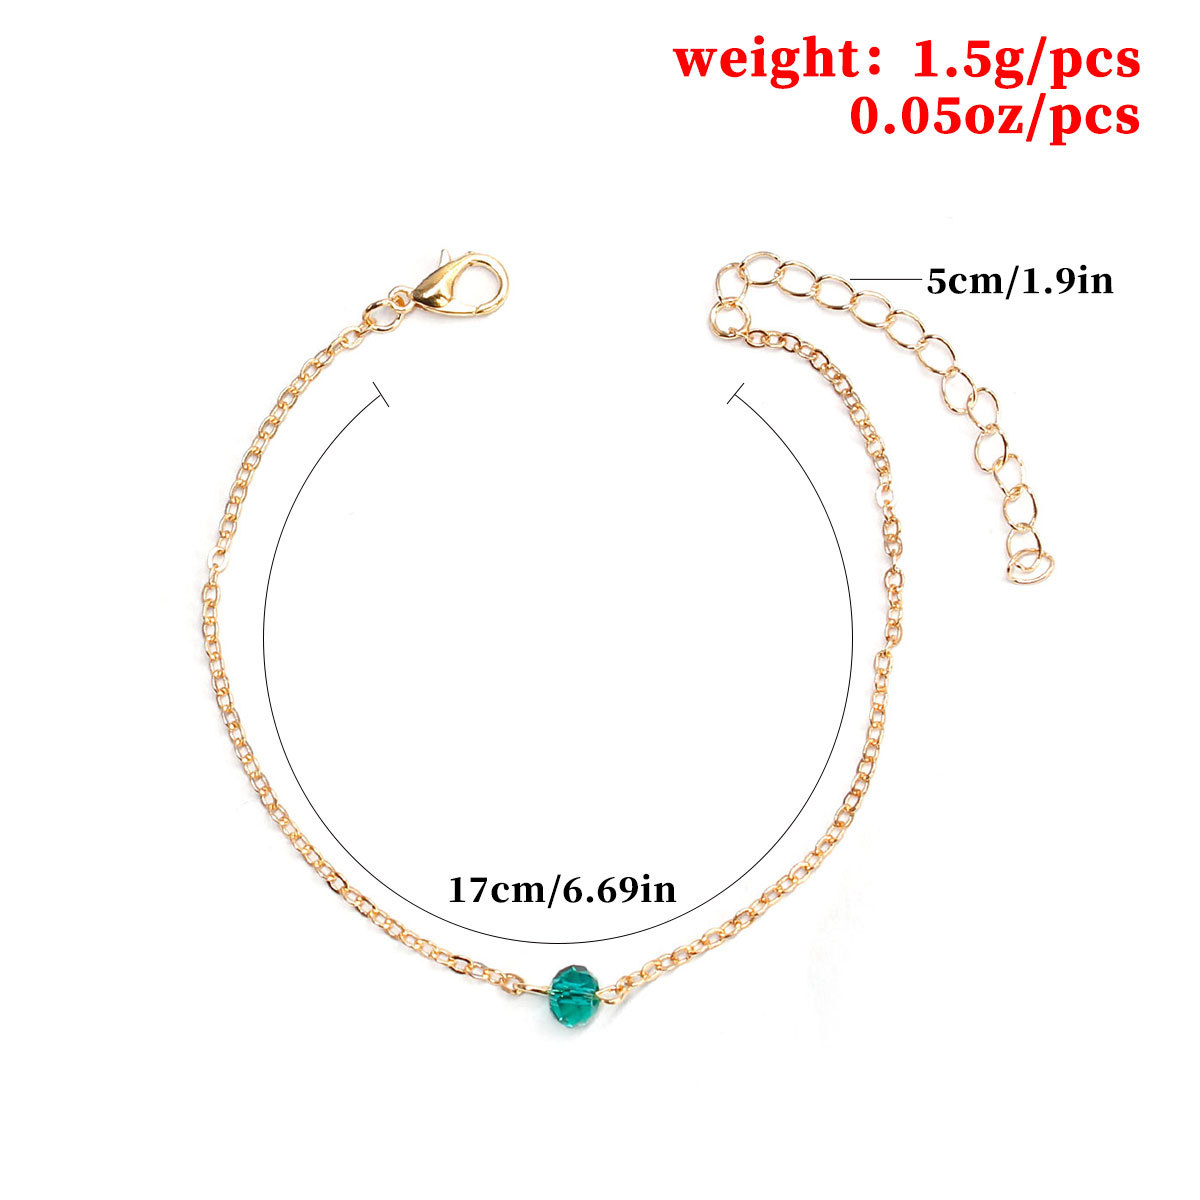 New Crystal Simple Chain Charm Bracelet Gold Silver Color Adjustable Hand Accessories for Women L053 in Charm Bracelets from Jewelry Accessories